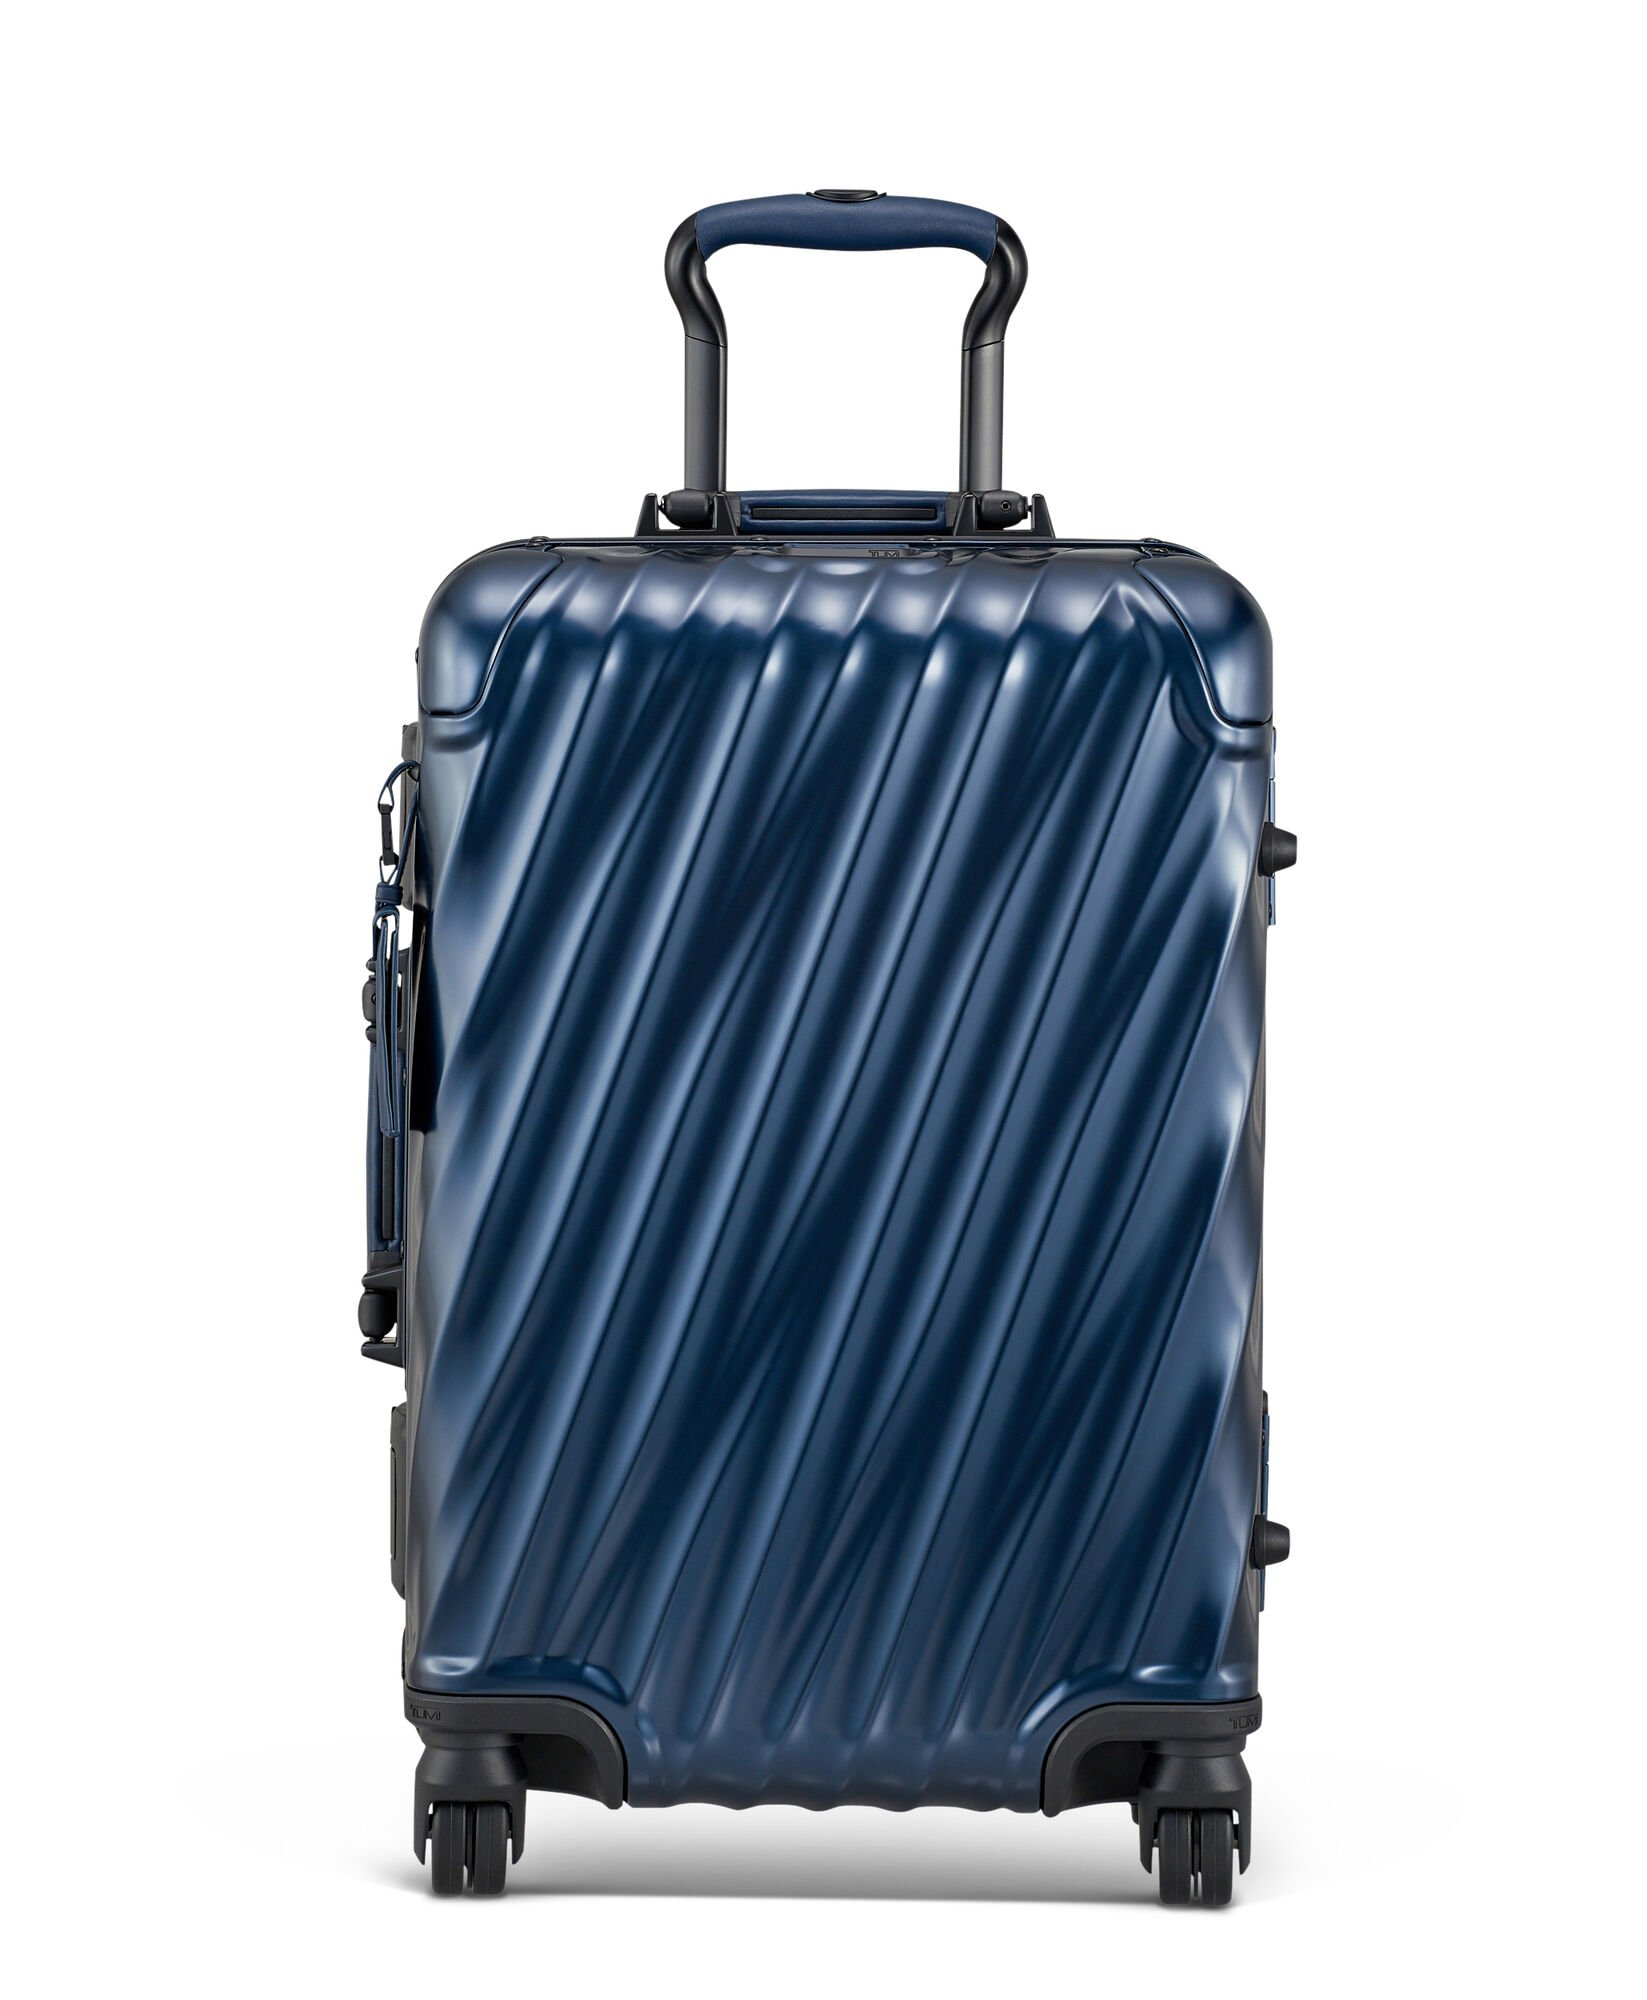 Picture of Tumi | 19 Degree International Carry On